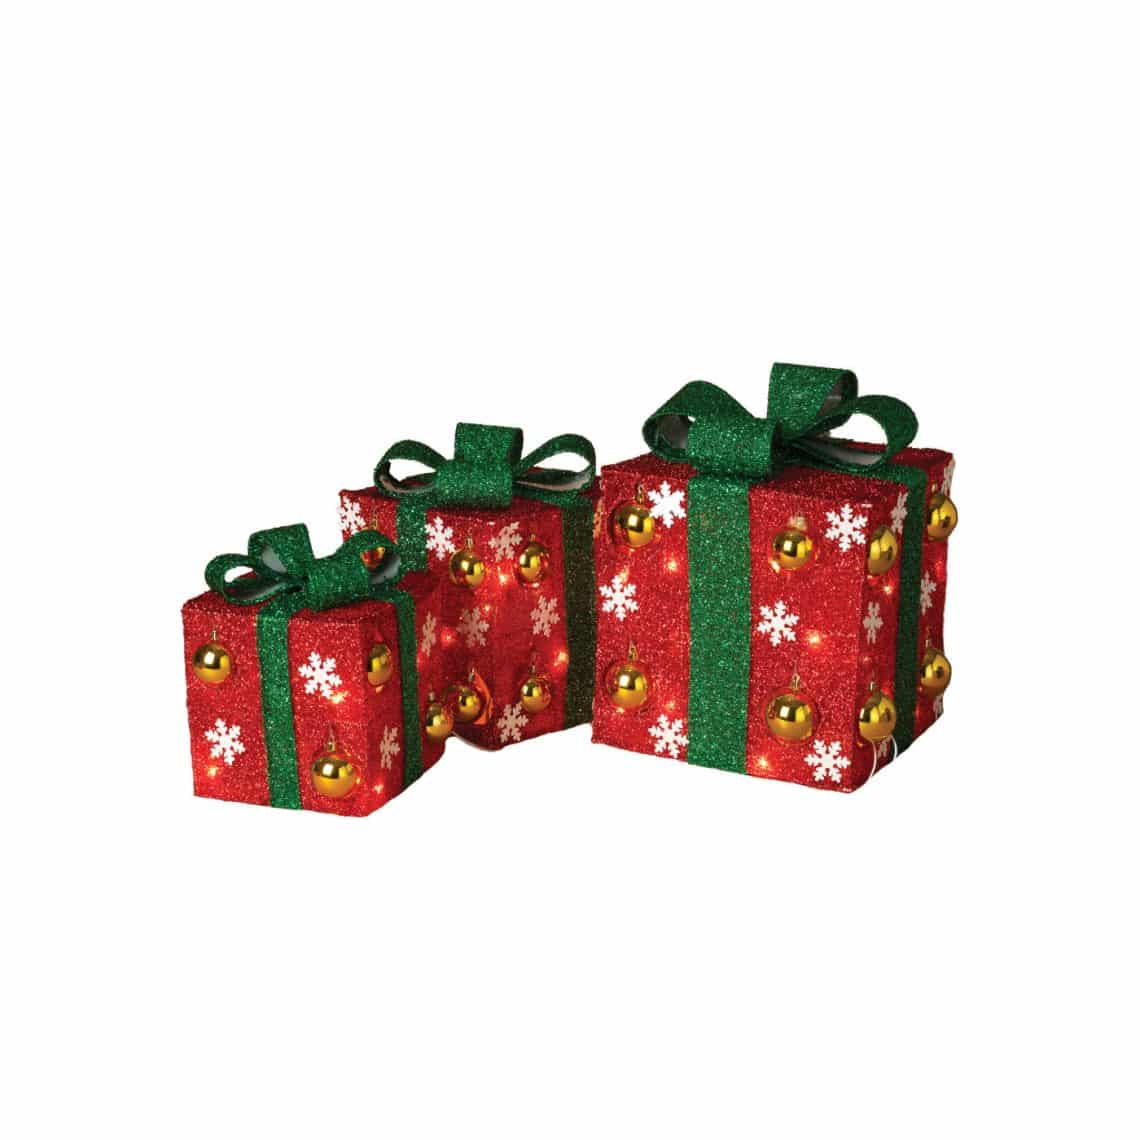 Electric Red Outdoor Gift Boxes with Green Bow and Ornament Accents ...